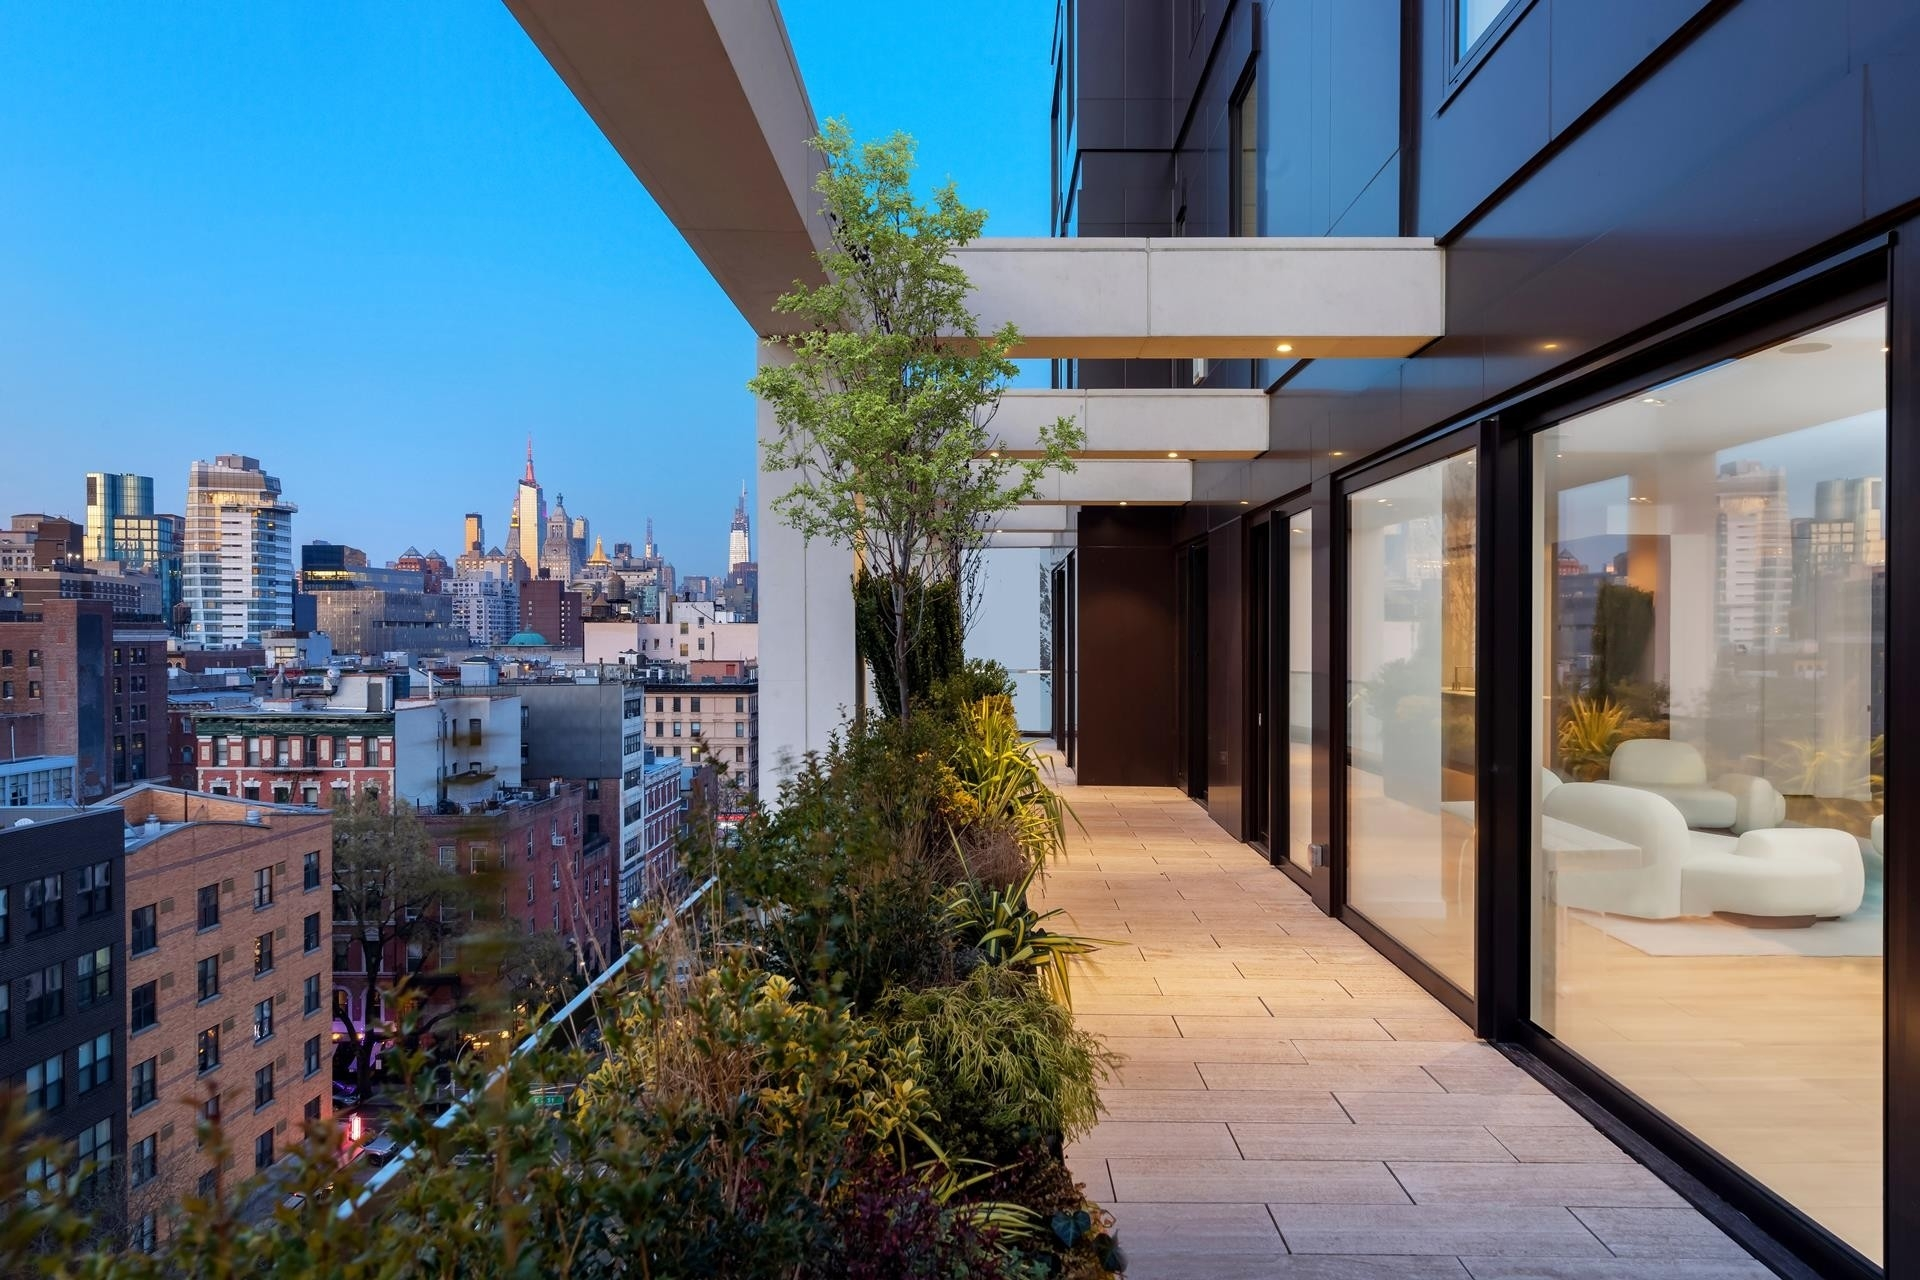 9. Condominiums for Sale at 32 E 1ST ST , PHBC East Village, New York, NY 10003